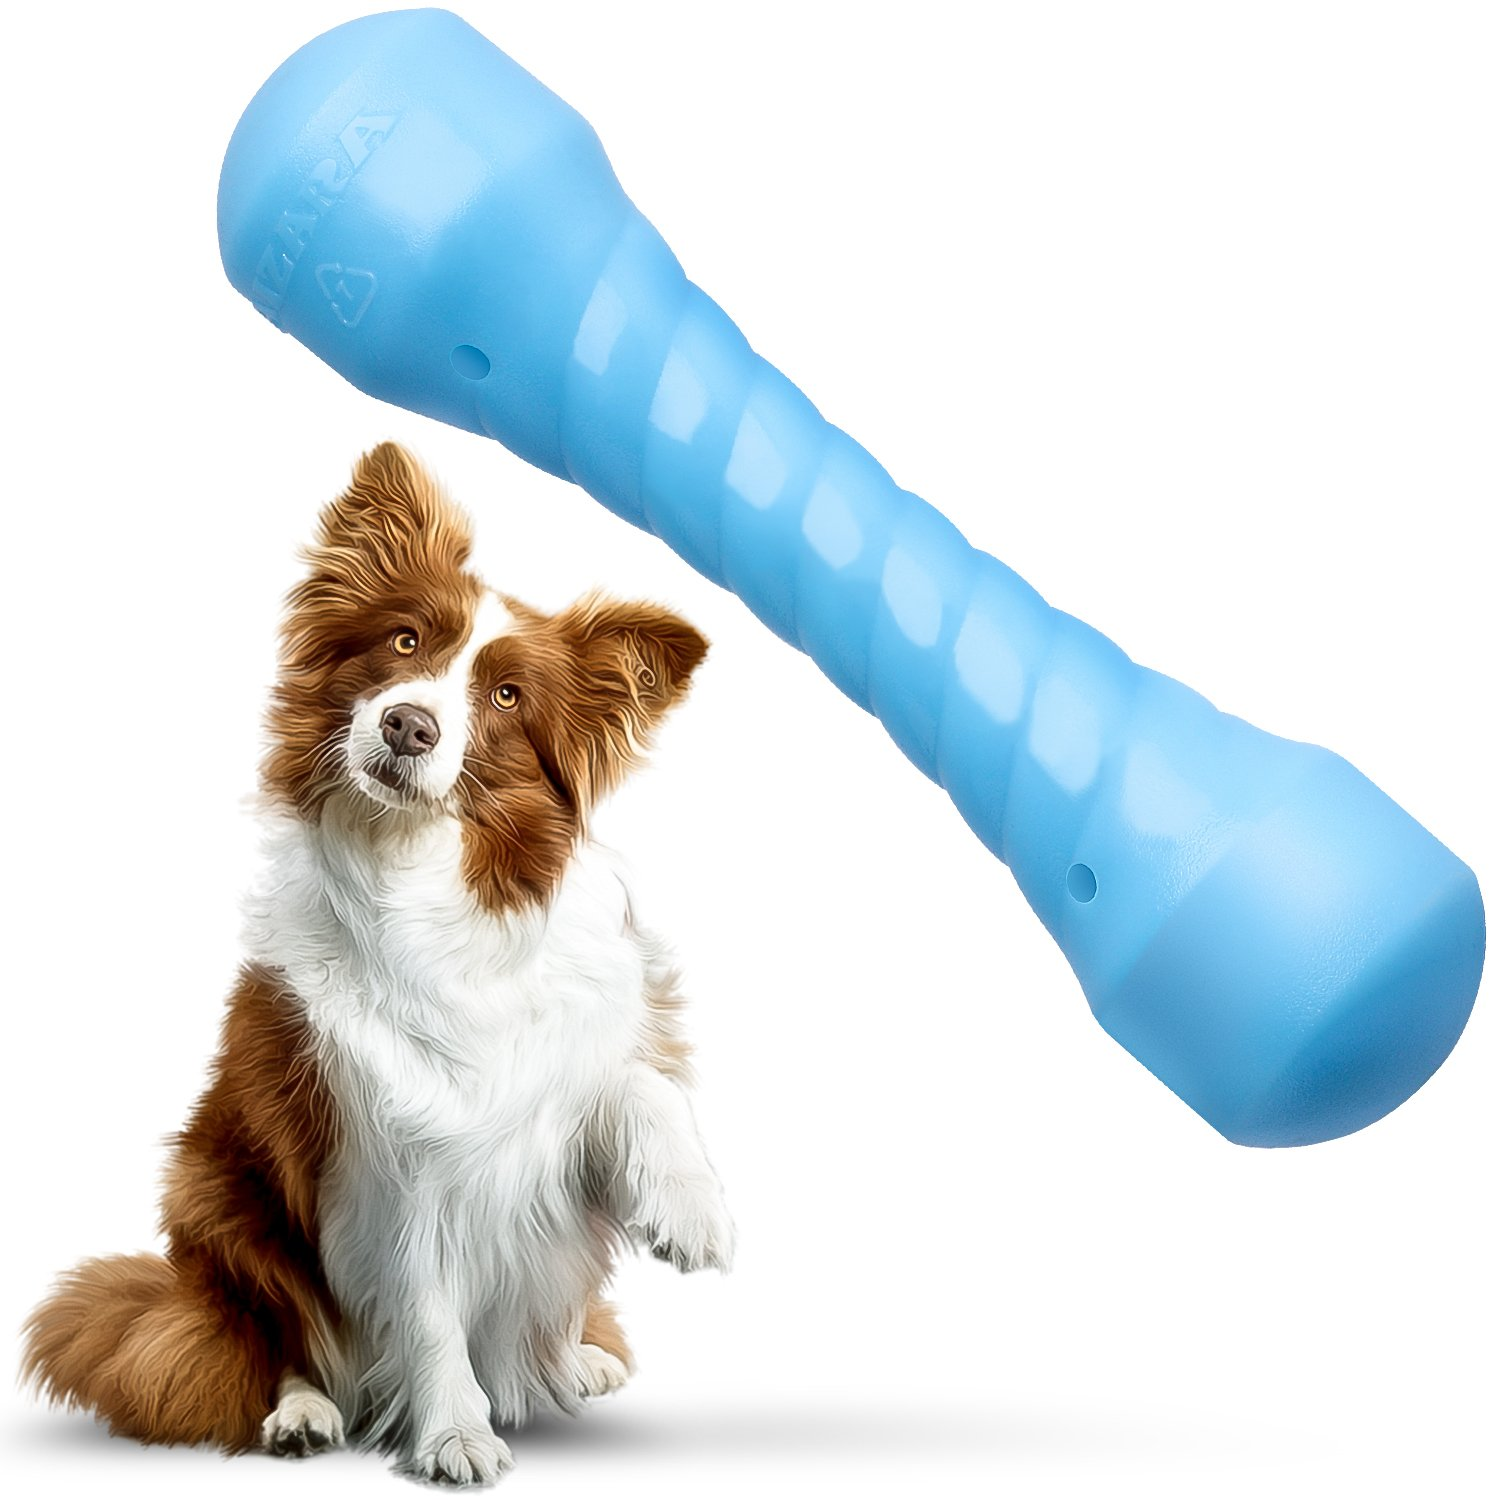 outlet Dog chew toys Indestructible Dog Chew Toy Tough Rubber